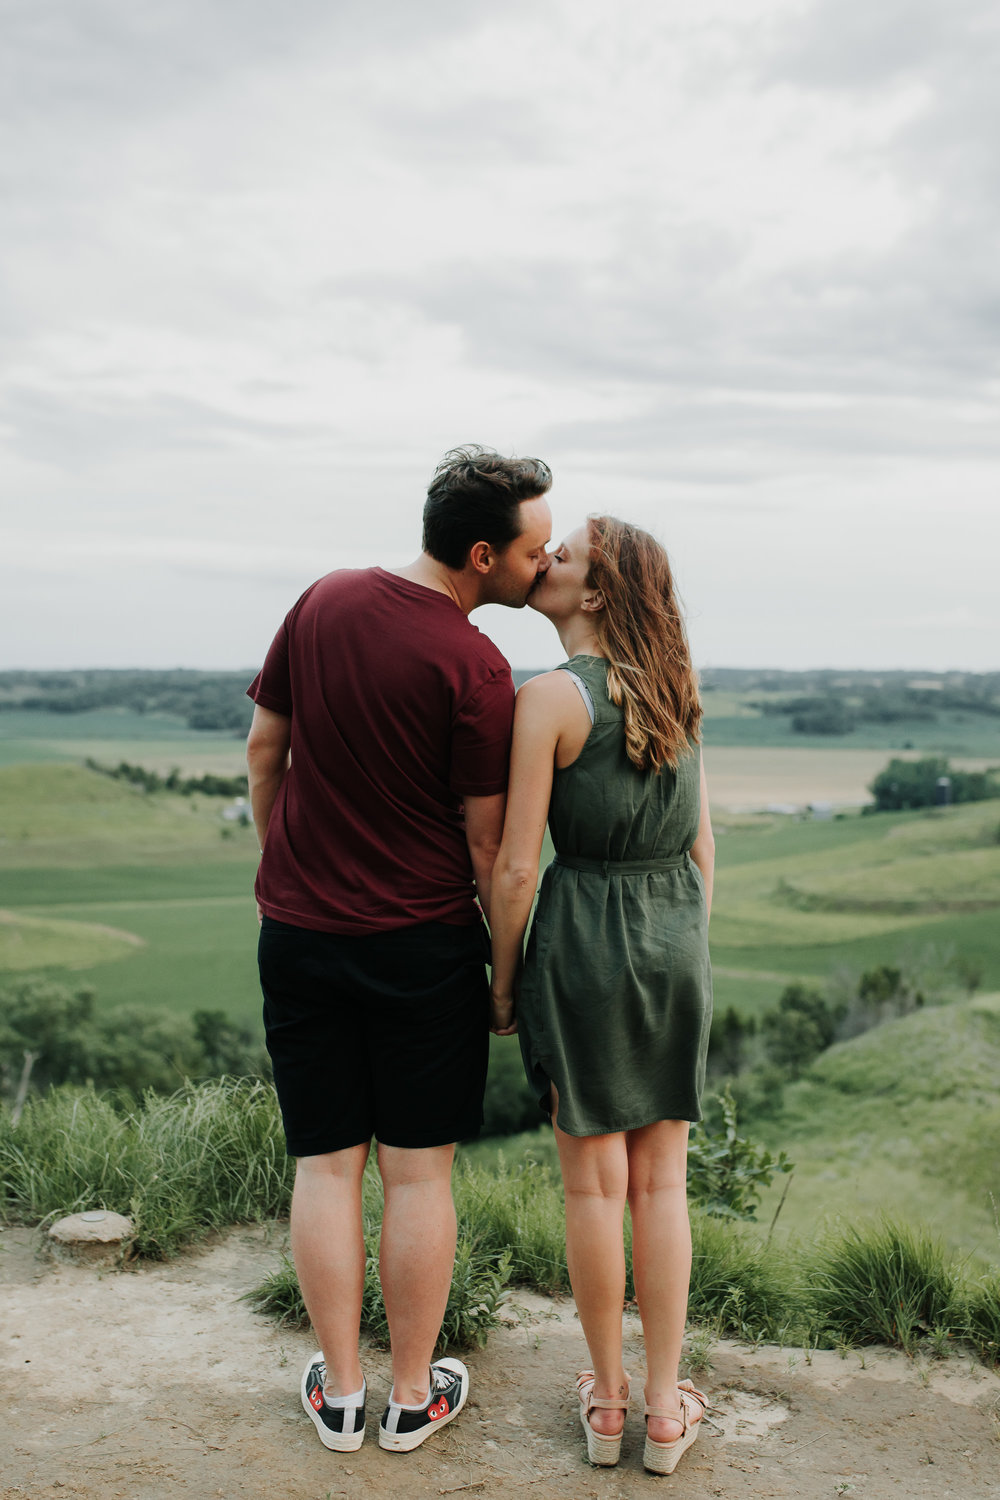 Sydney & Thomas - Engaged - Nathaniel Jensen Photography - Omaha Nebraska Wedding Photographer-105.jpg